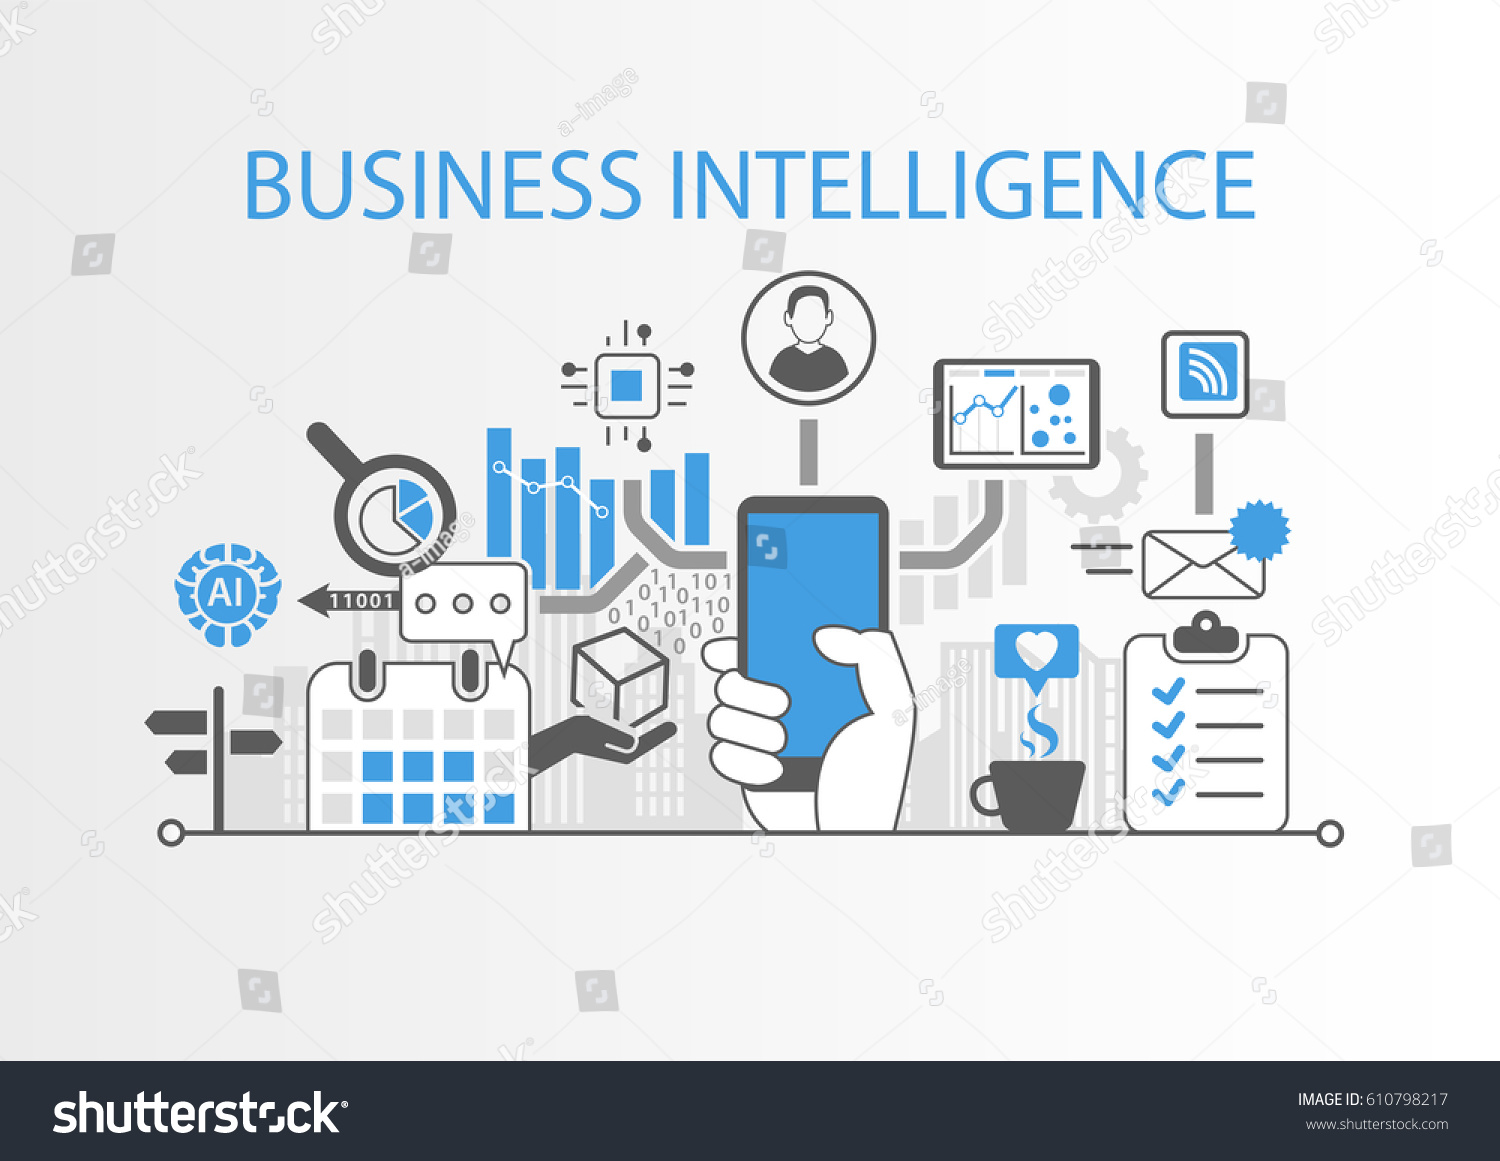 Business Intelligence Concept Vector Background. Locksmith Beverly Hills Ca Master In Banking. Time Warner Home Security Elmah Log Analyzer. Divorce Lawyers In Oregon Online College Ohio. Best Way To Find Out Credit Score. Allergic Asthma Treatments Solar Panel Texas. Deferred Variable Annuity Calculator. Lutheran Church Charities Sl3000 Tape Library. First Time Home Buyer Ohio Settling Irs Debt